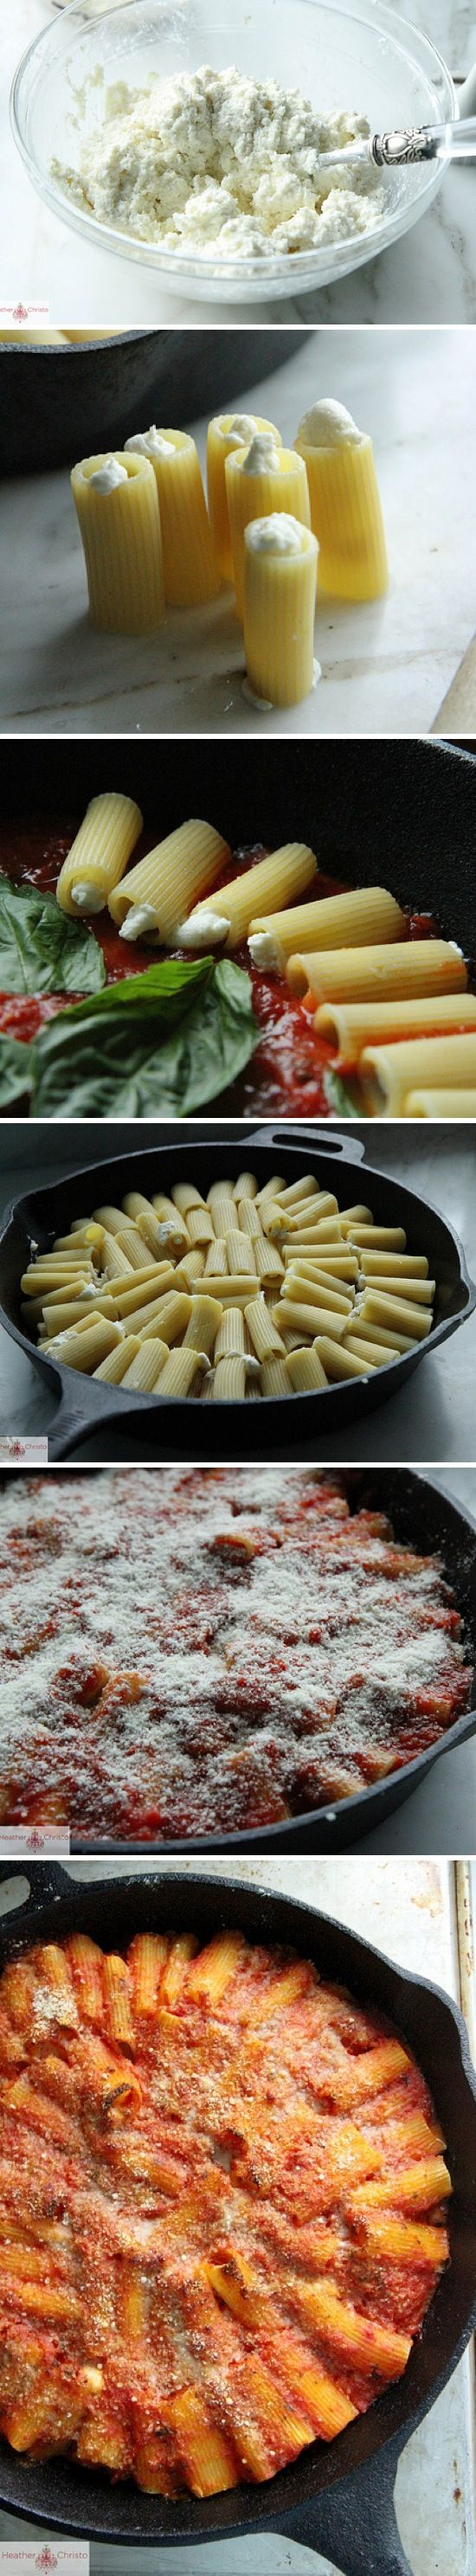 Skillet Baked Stuffed Rigatoni- link to recipe